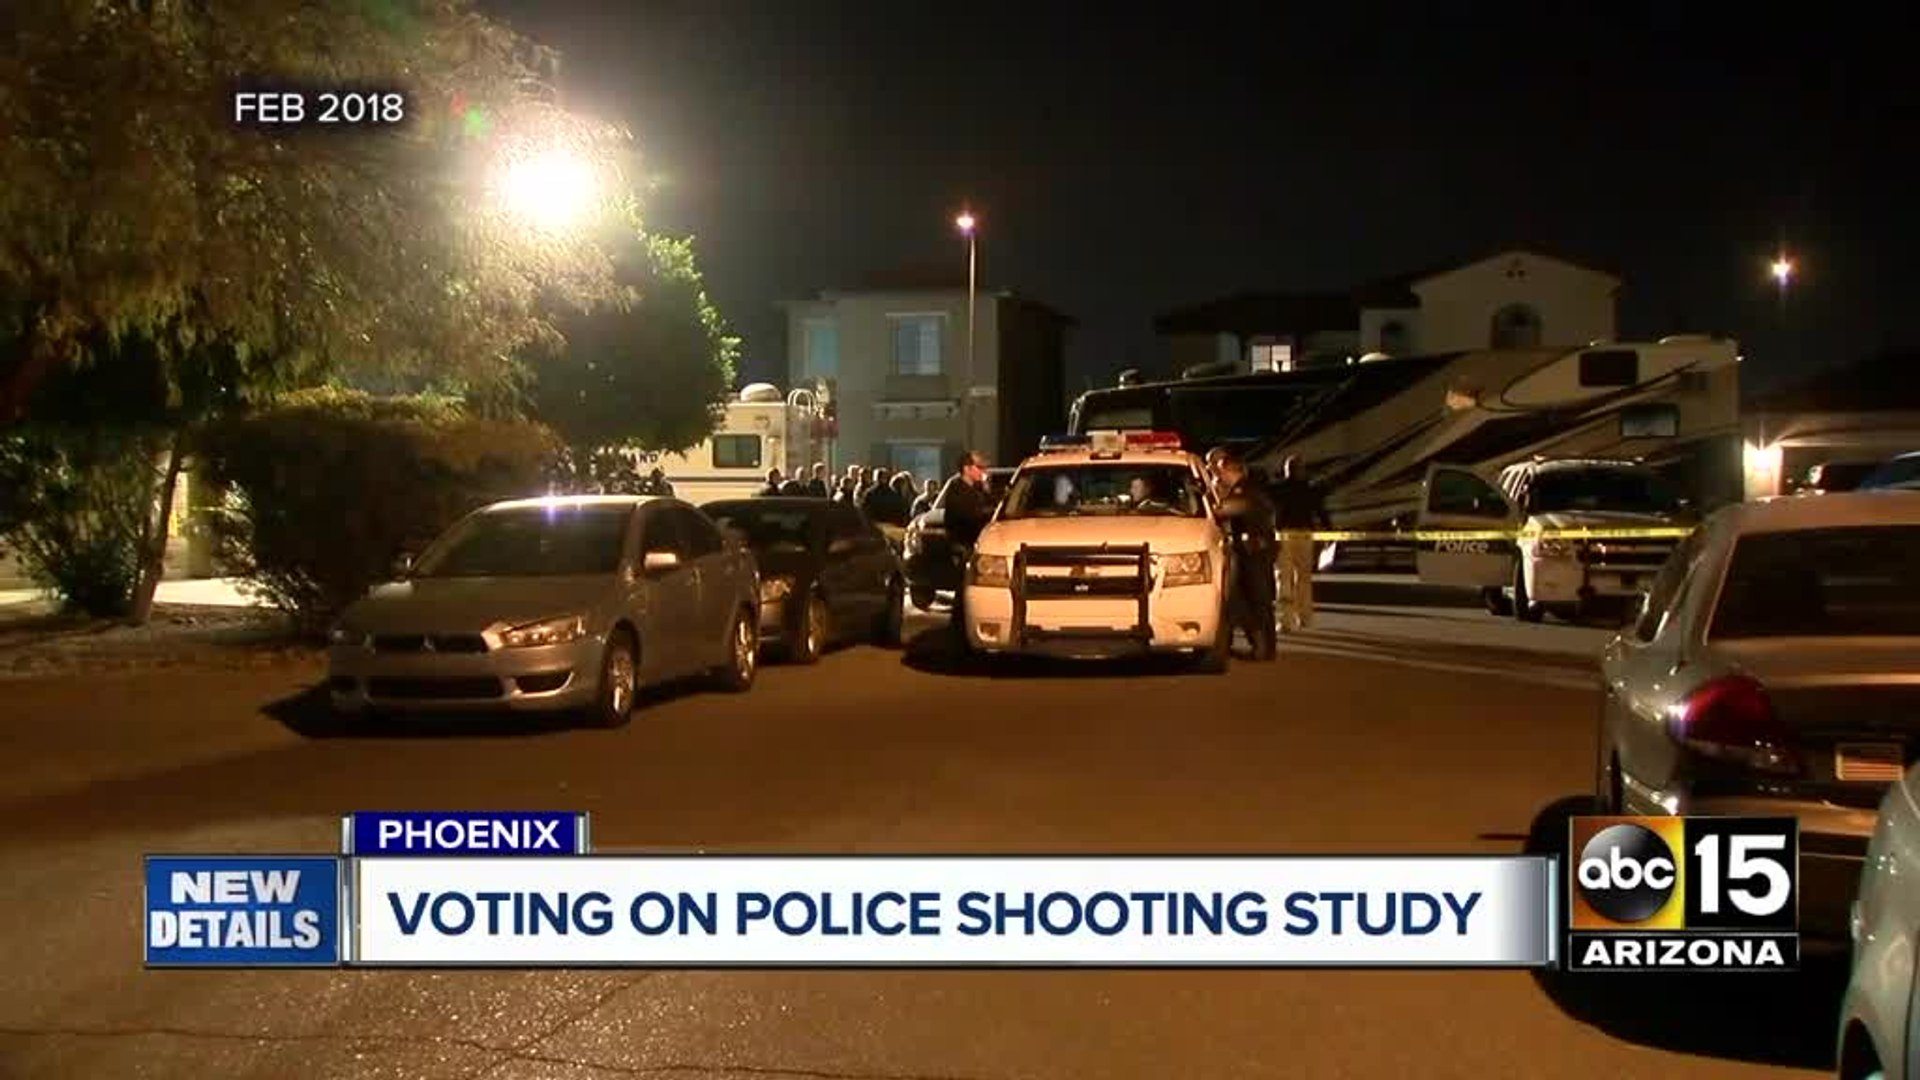 Top stories: Truck hits pedestrian in Scottsdale, Phoenix hit-and-run, Police shooting study